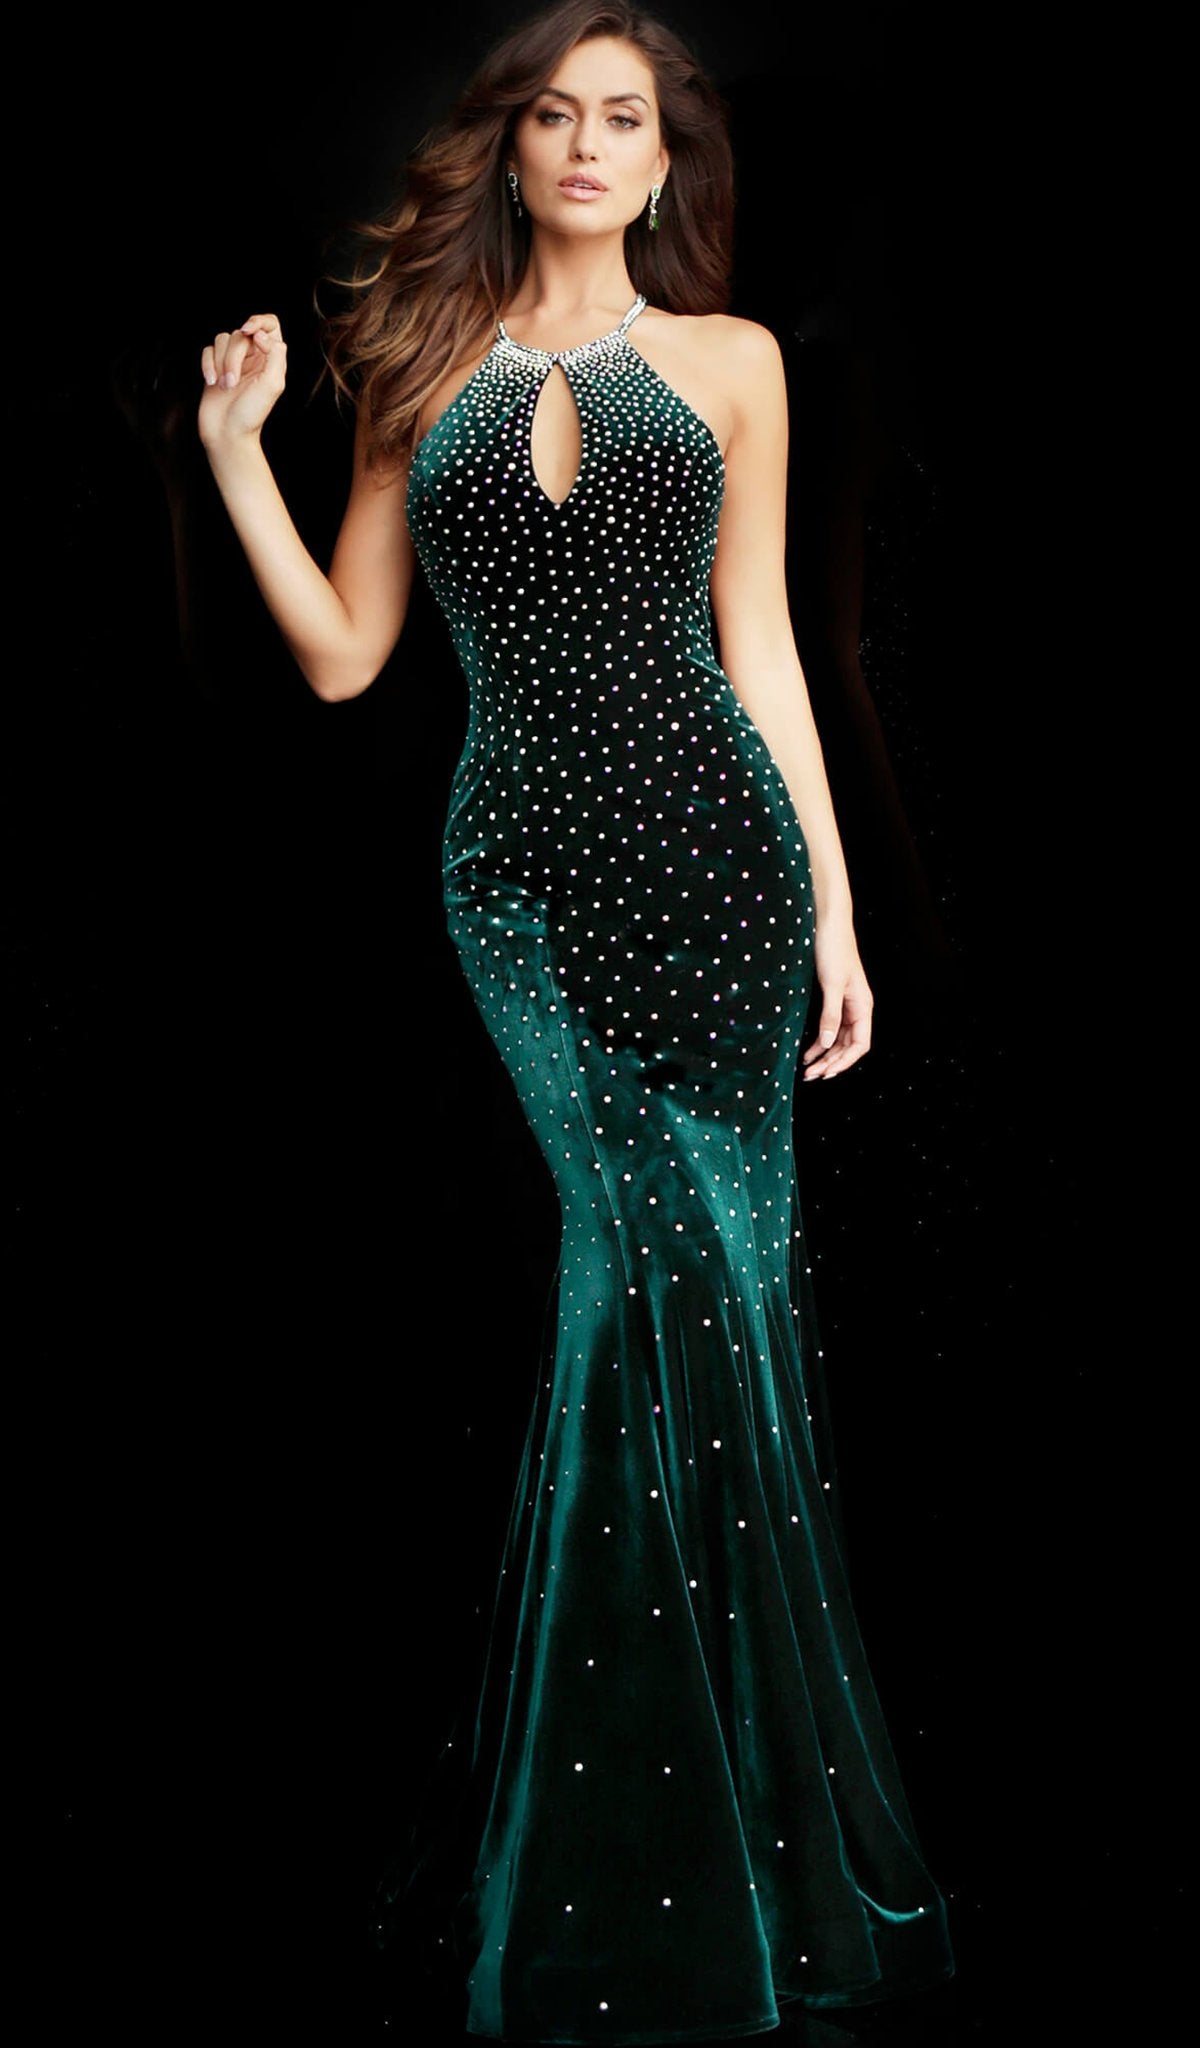 Jovani - 65312 Jewel Sprinkled Halter Cutout Velvet Gown in Green